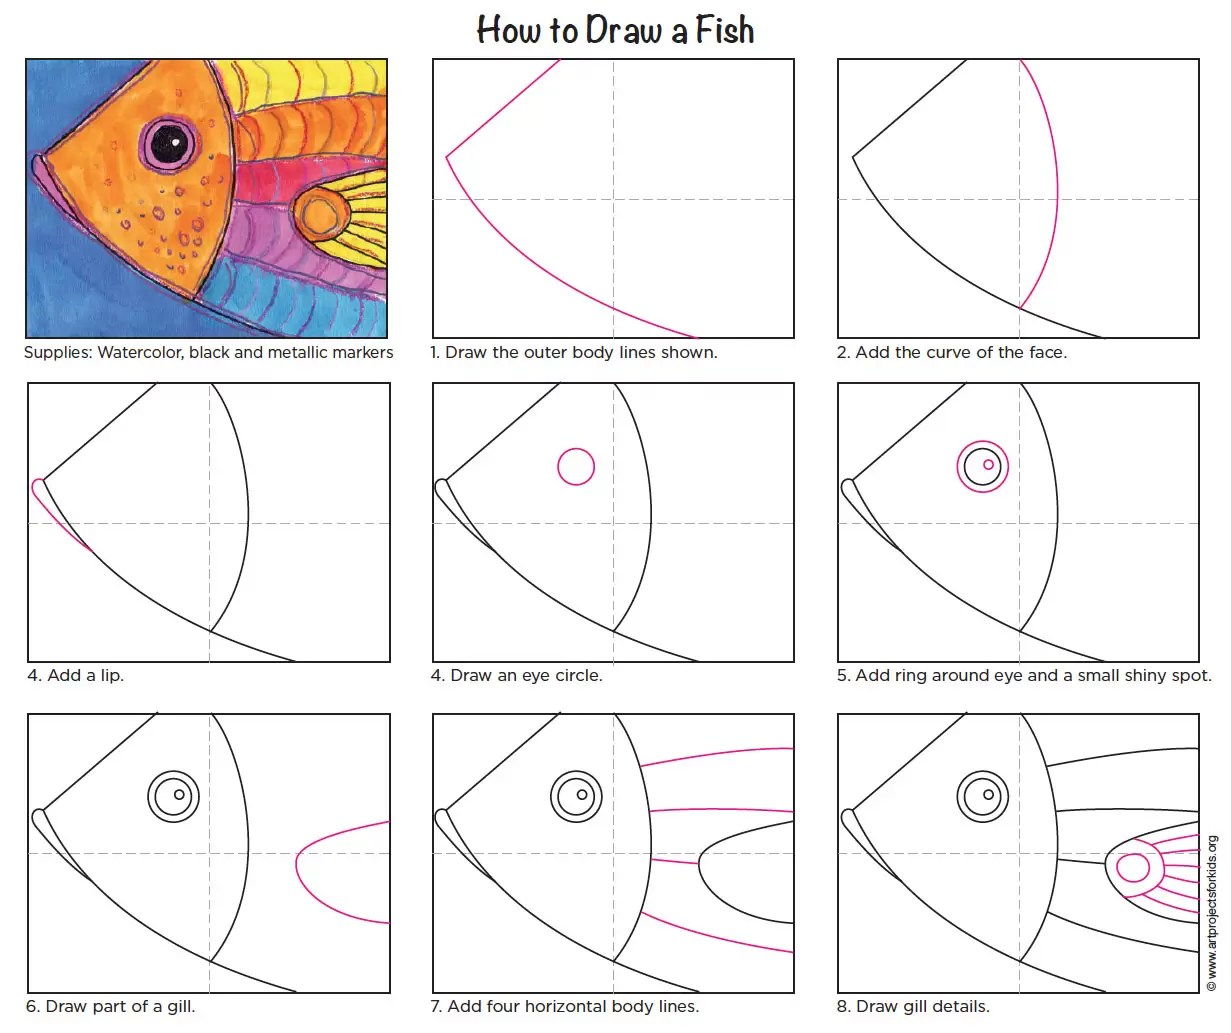 How To Draw A Fish Close Up Art Projects For Kids